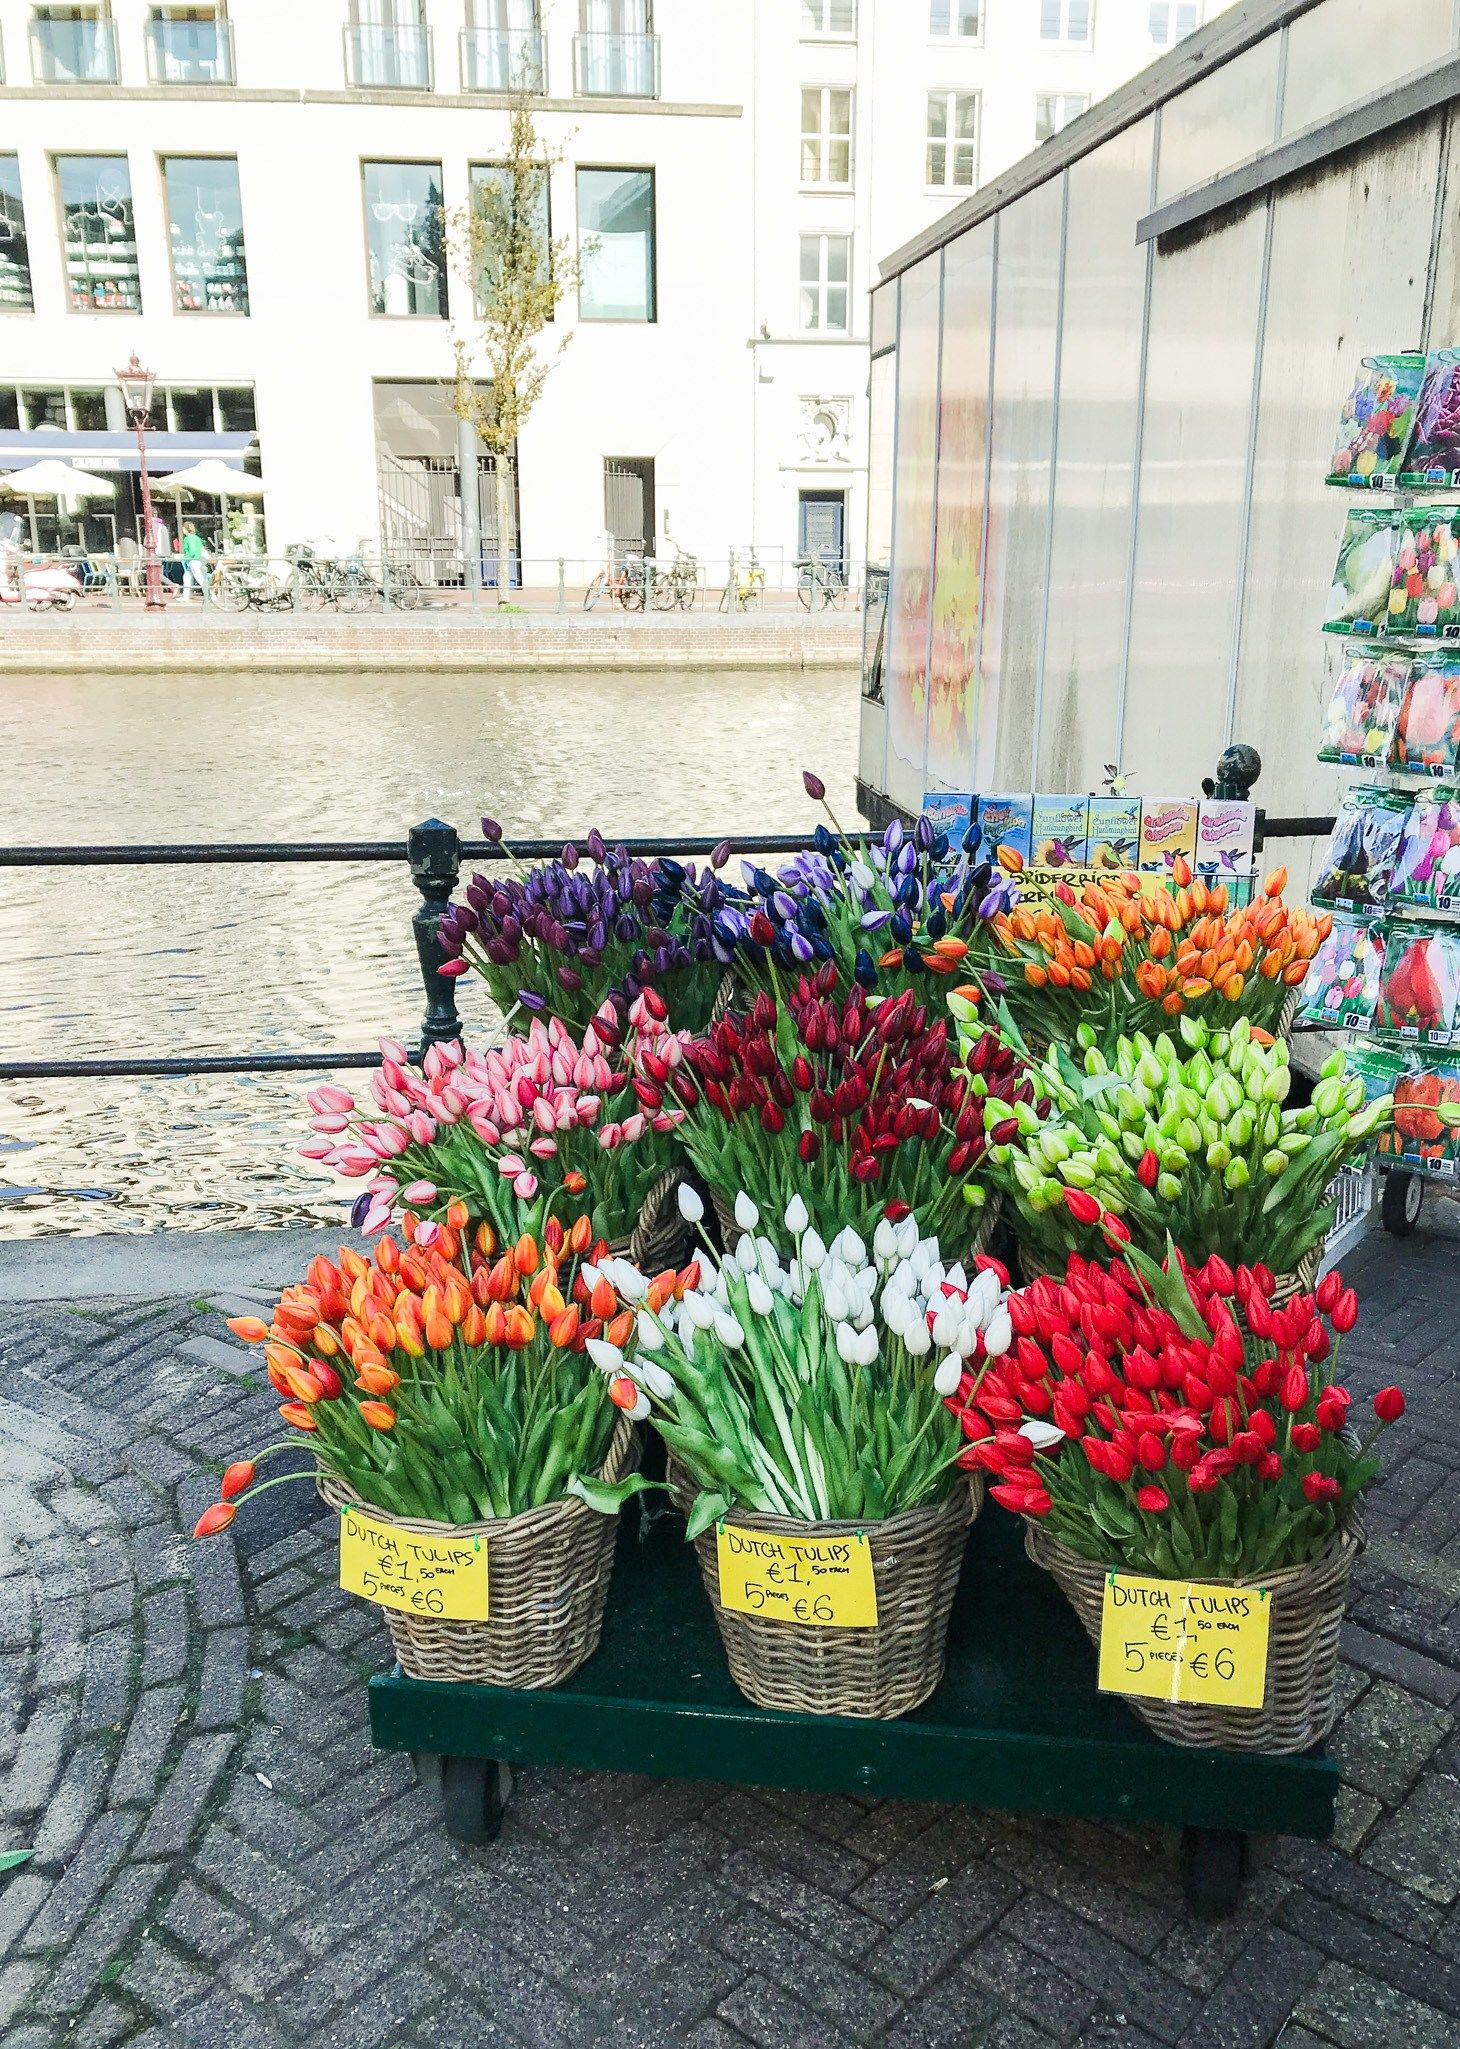 15 Things To Do And Eat In Amsterdam Jamie Kamber Amsterdam Flower Market Flower Market Amsterdam Itinerary